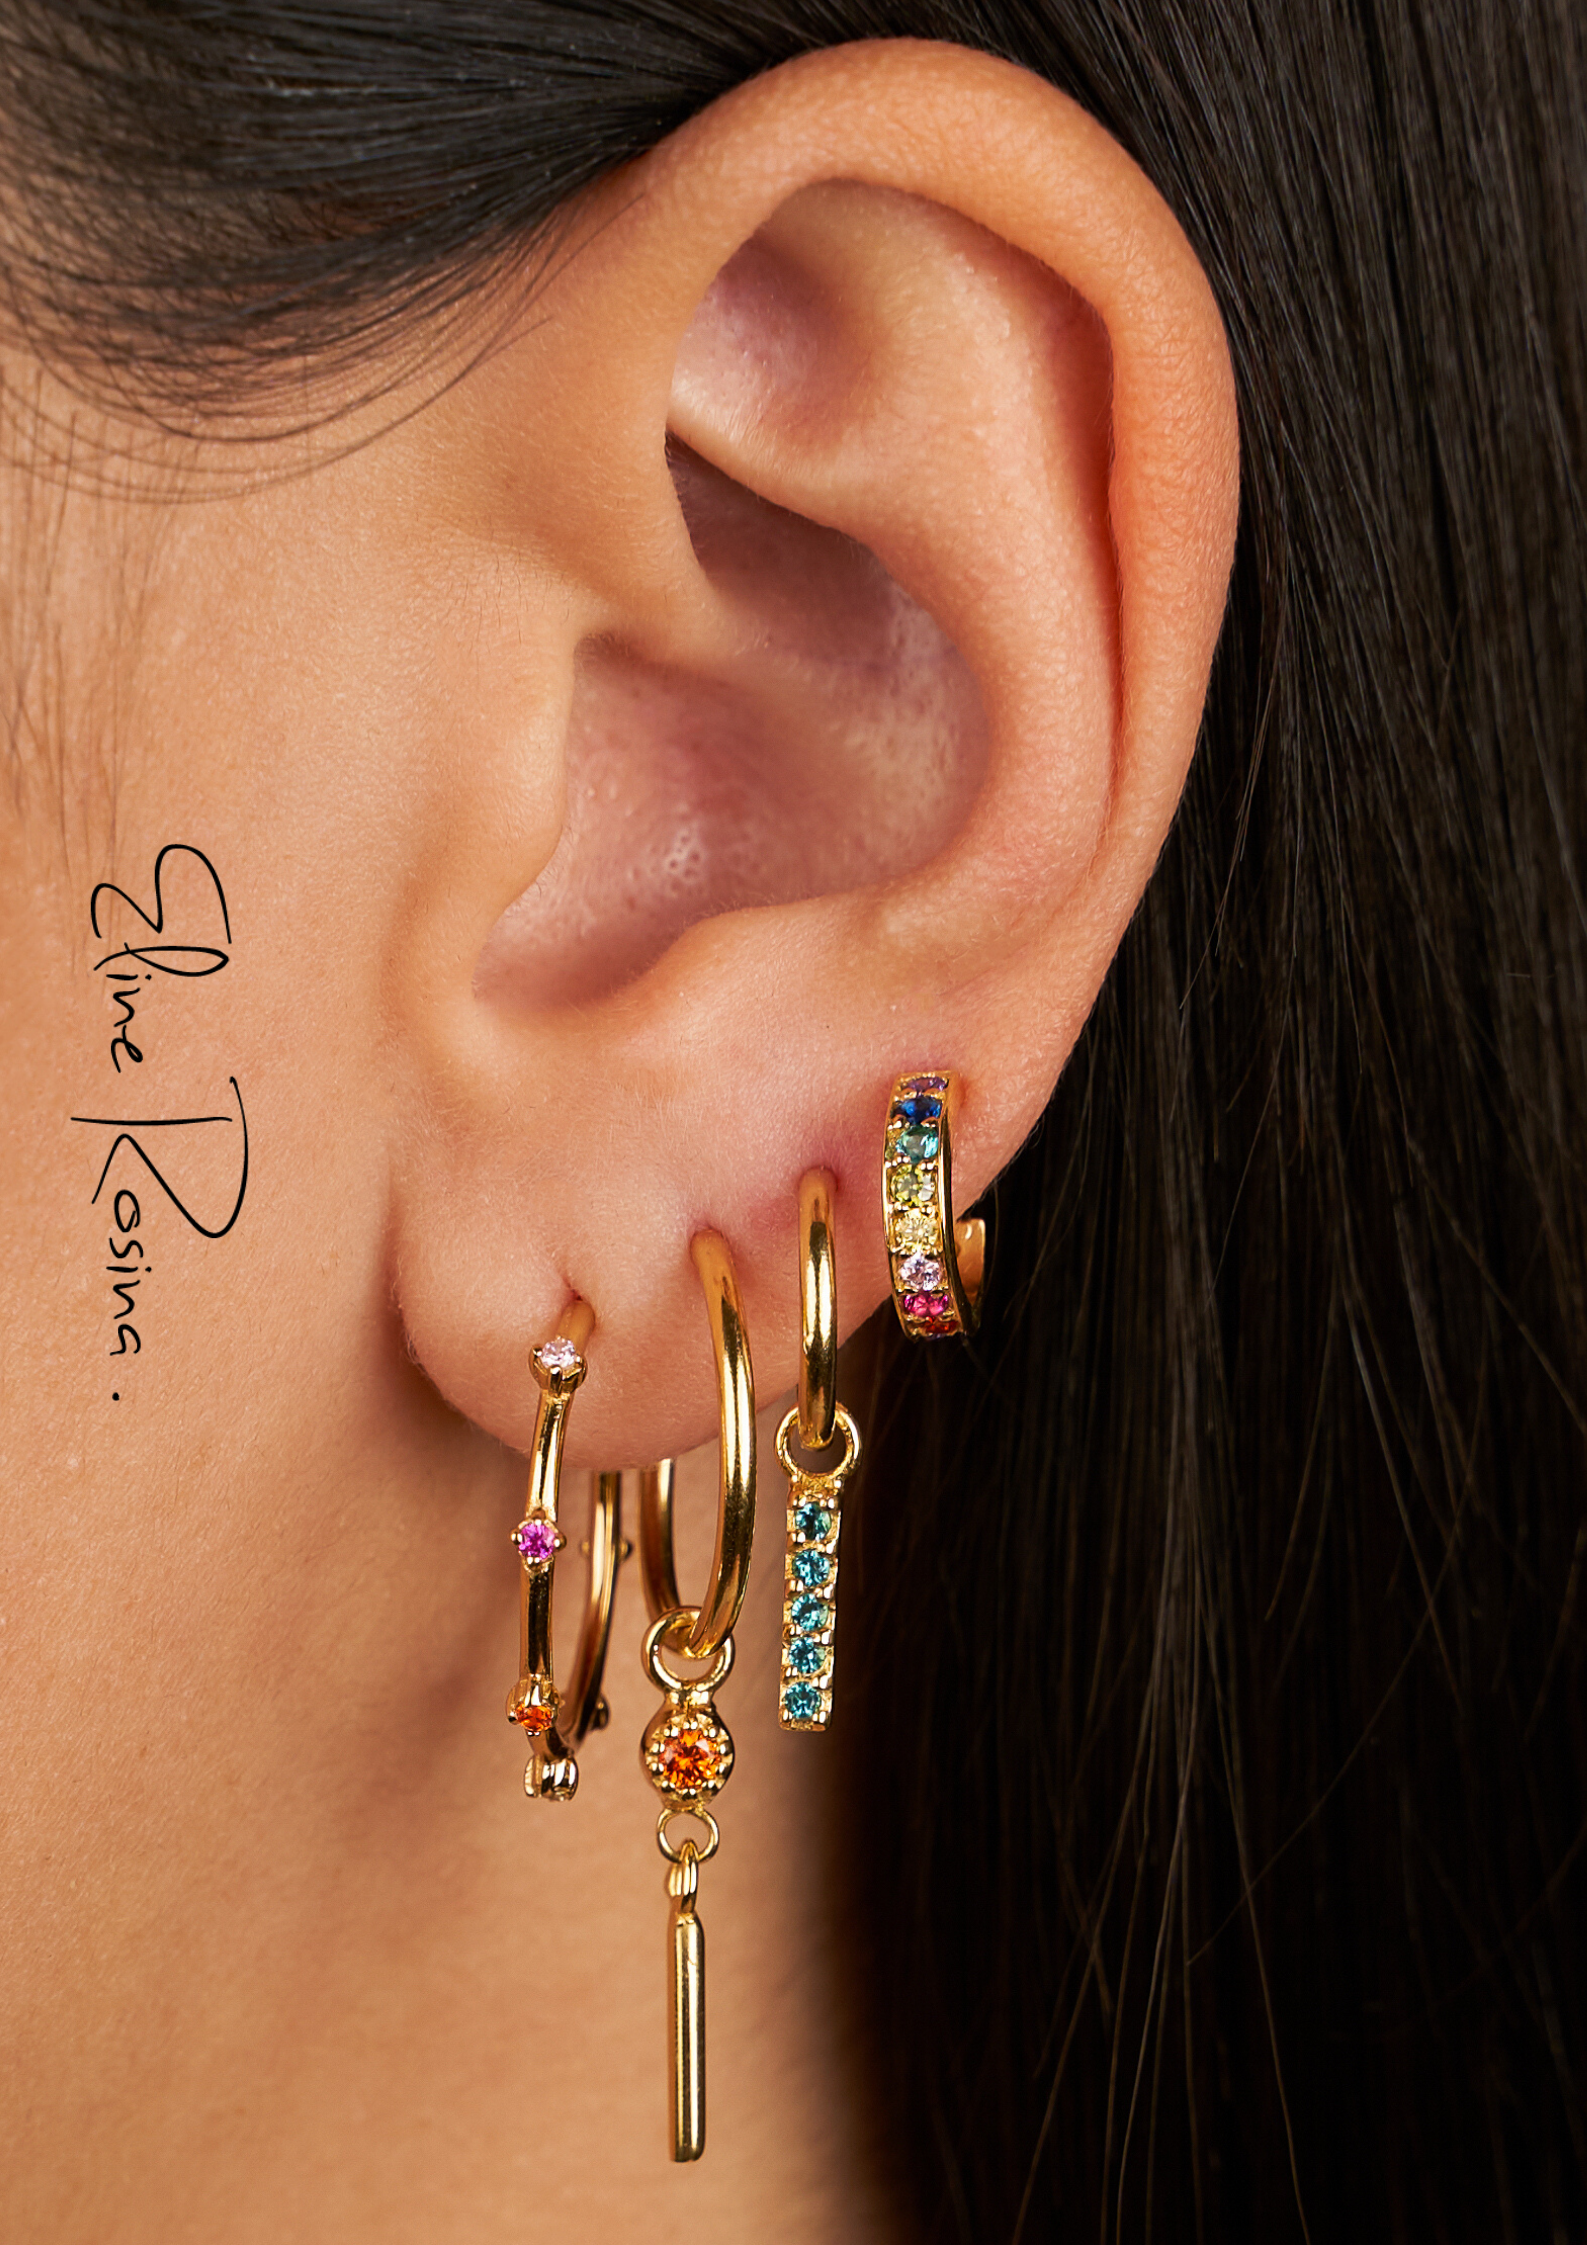 Earspiration | Earparty Inspiratie | Eline Rosina Jewelry